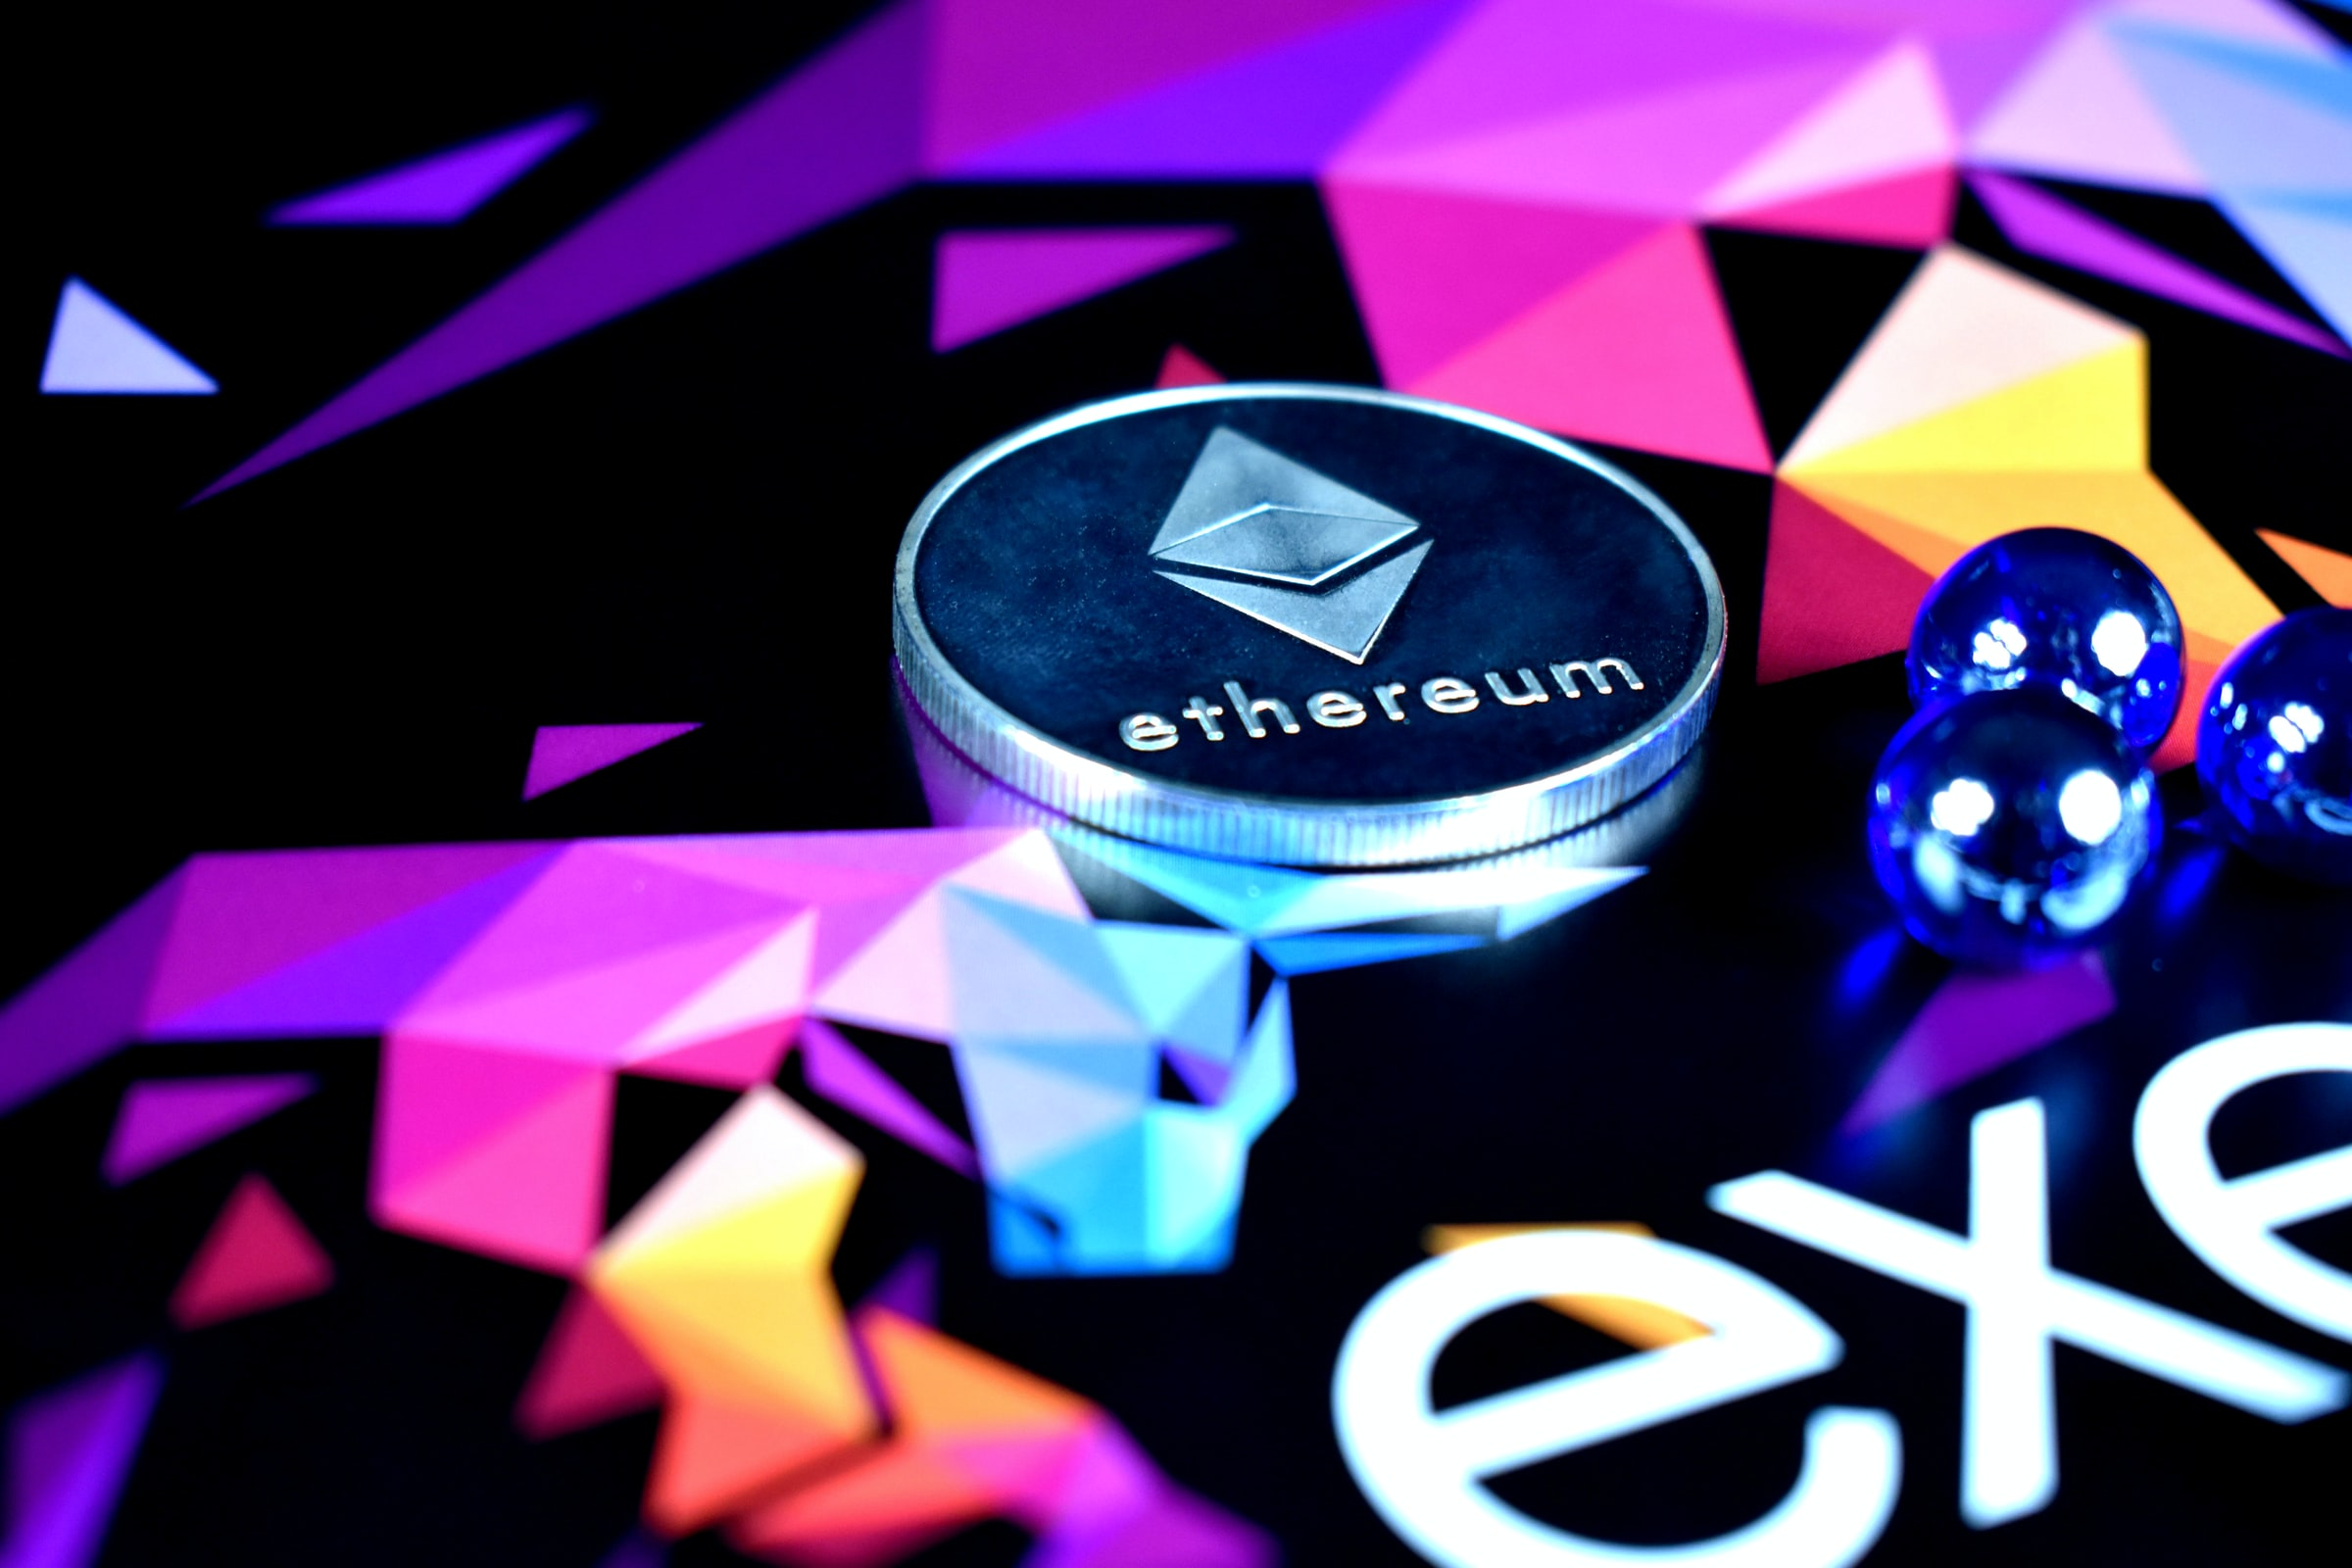 Ethereum poised to take off?